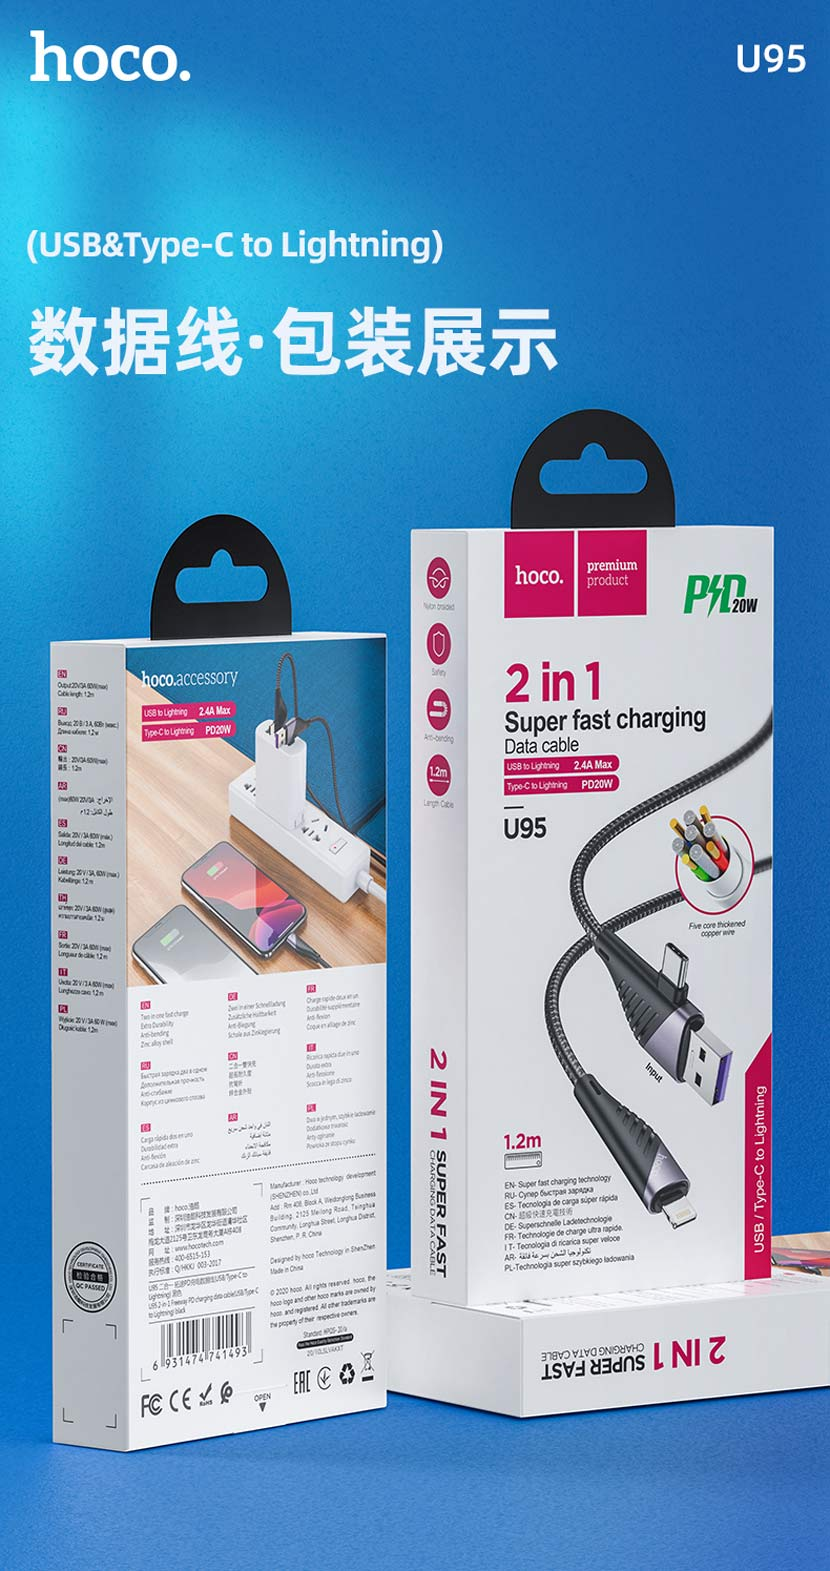 hoco news u95 freeway pd charging data cable 2in1 usb type c to lightning package cn